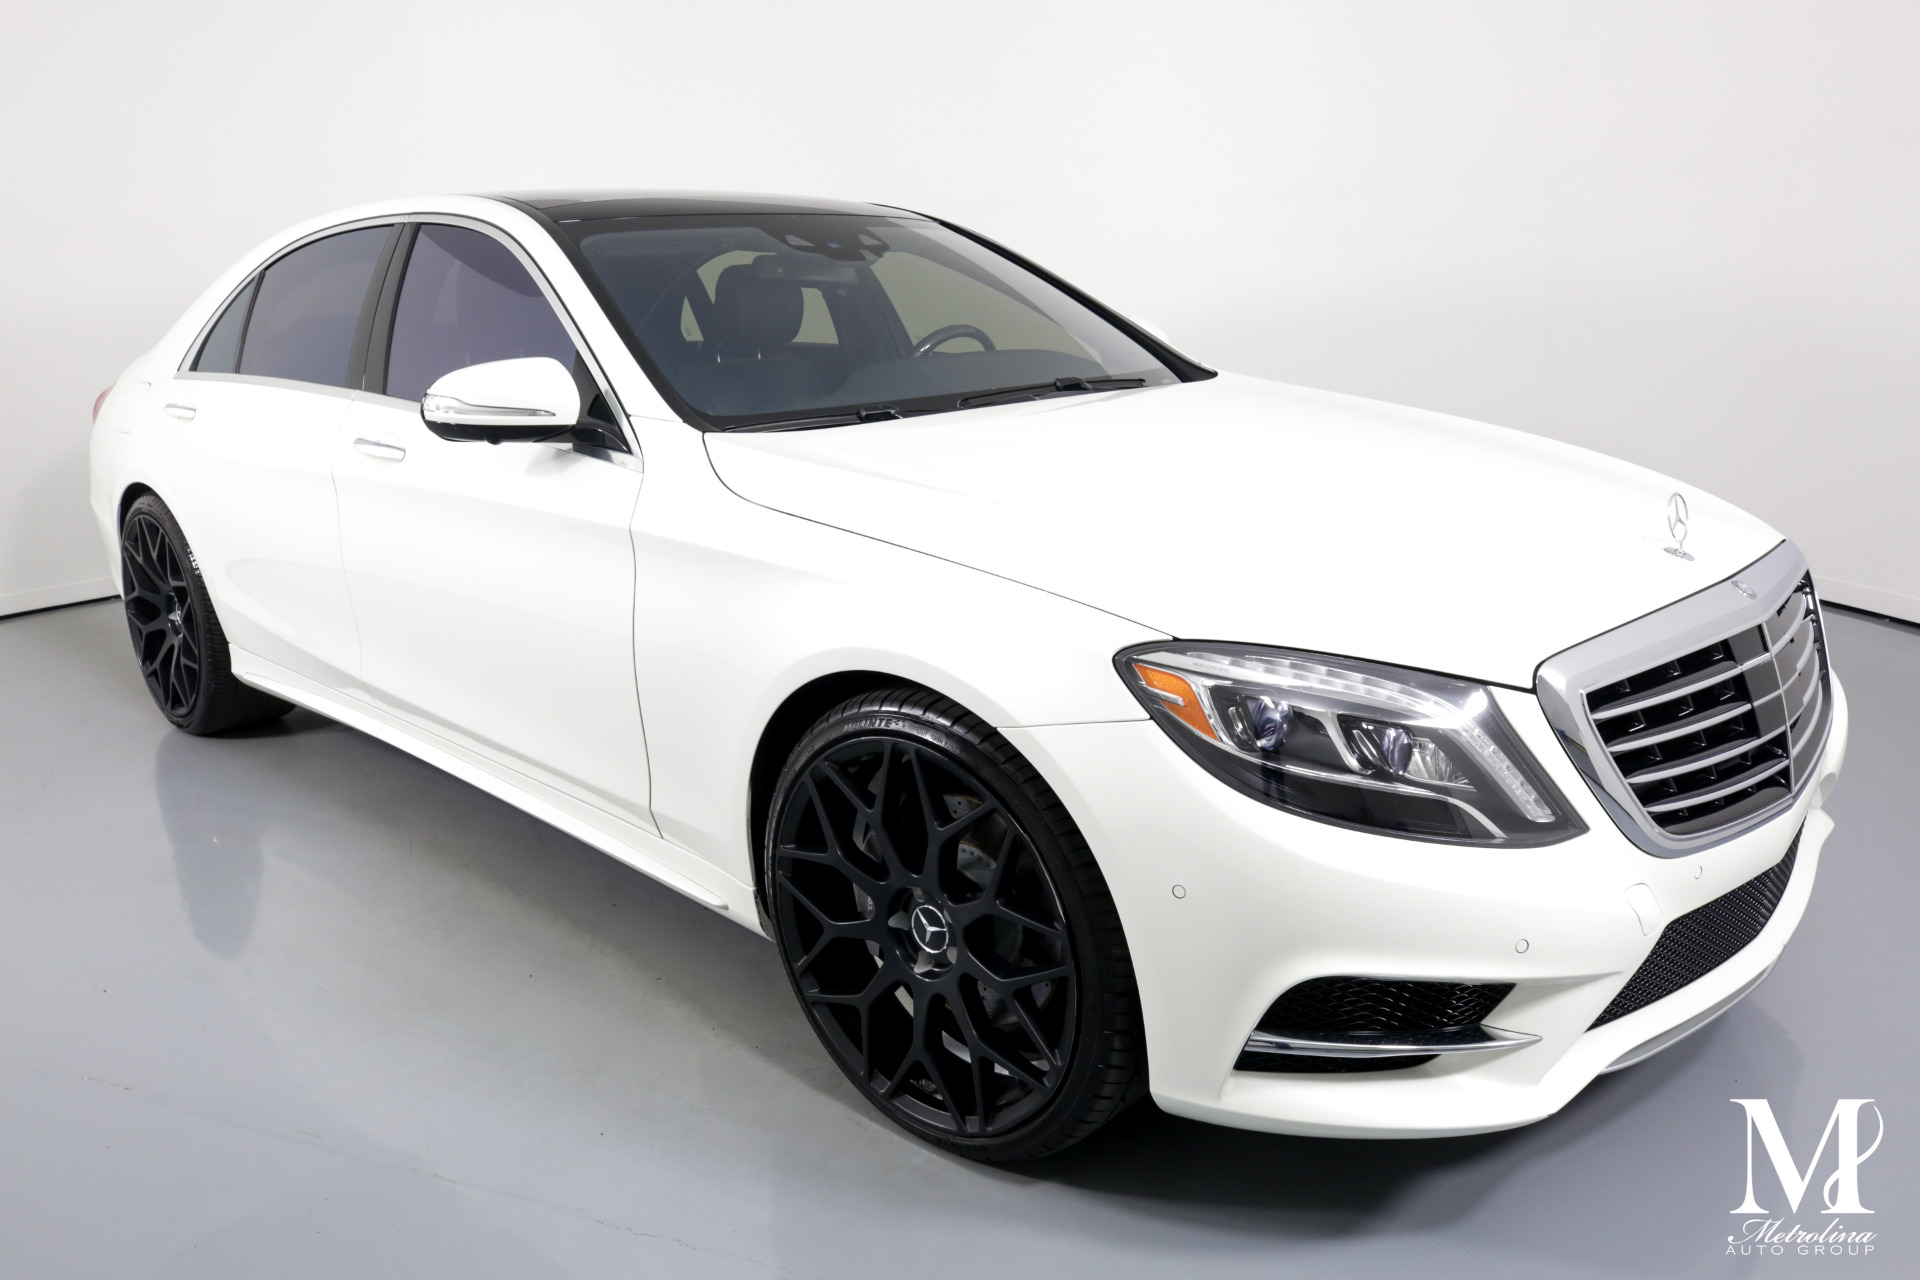 Used 2016 Mercedes-Benz S-Class S 550 for sale $45,996 at Metrolina Auto Group in Charlotte NC 28217 - 2